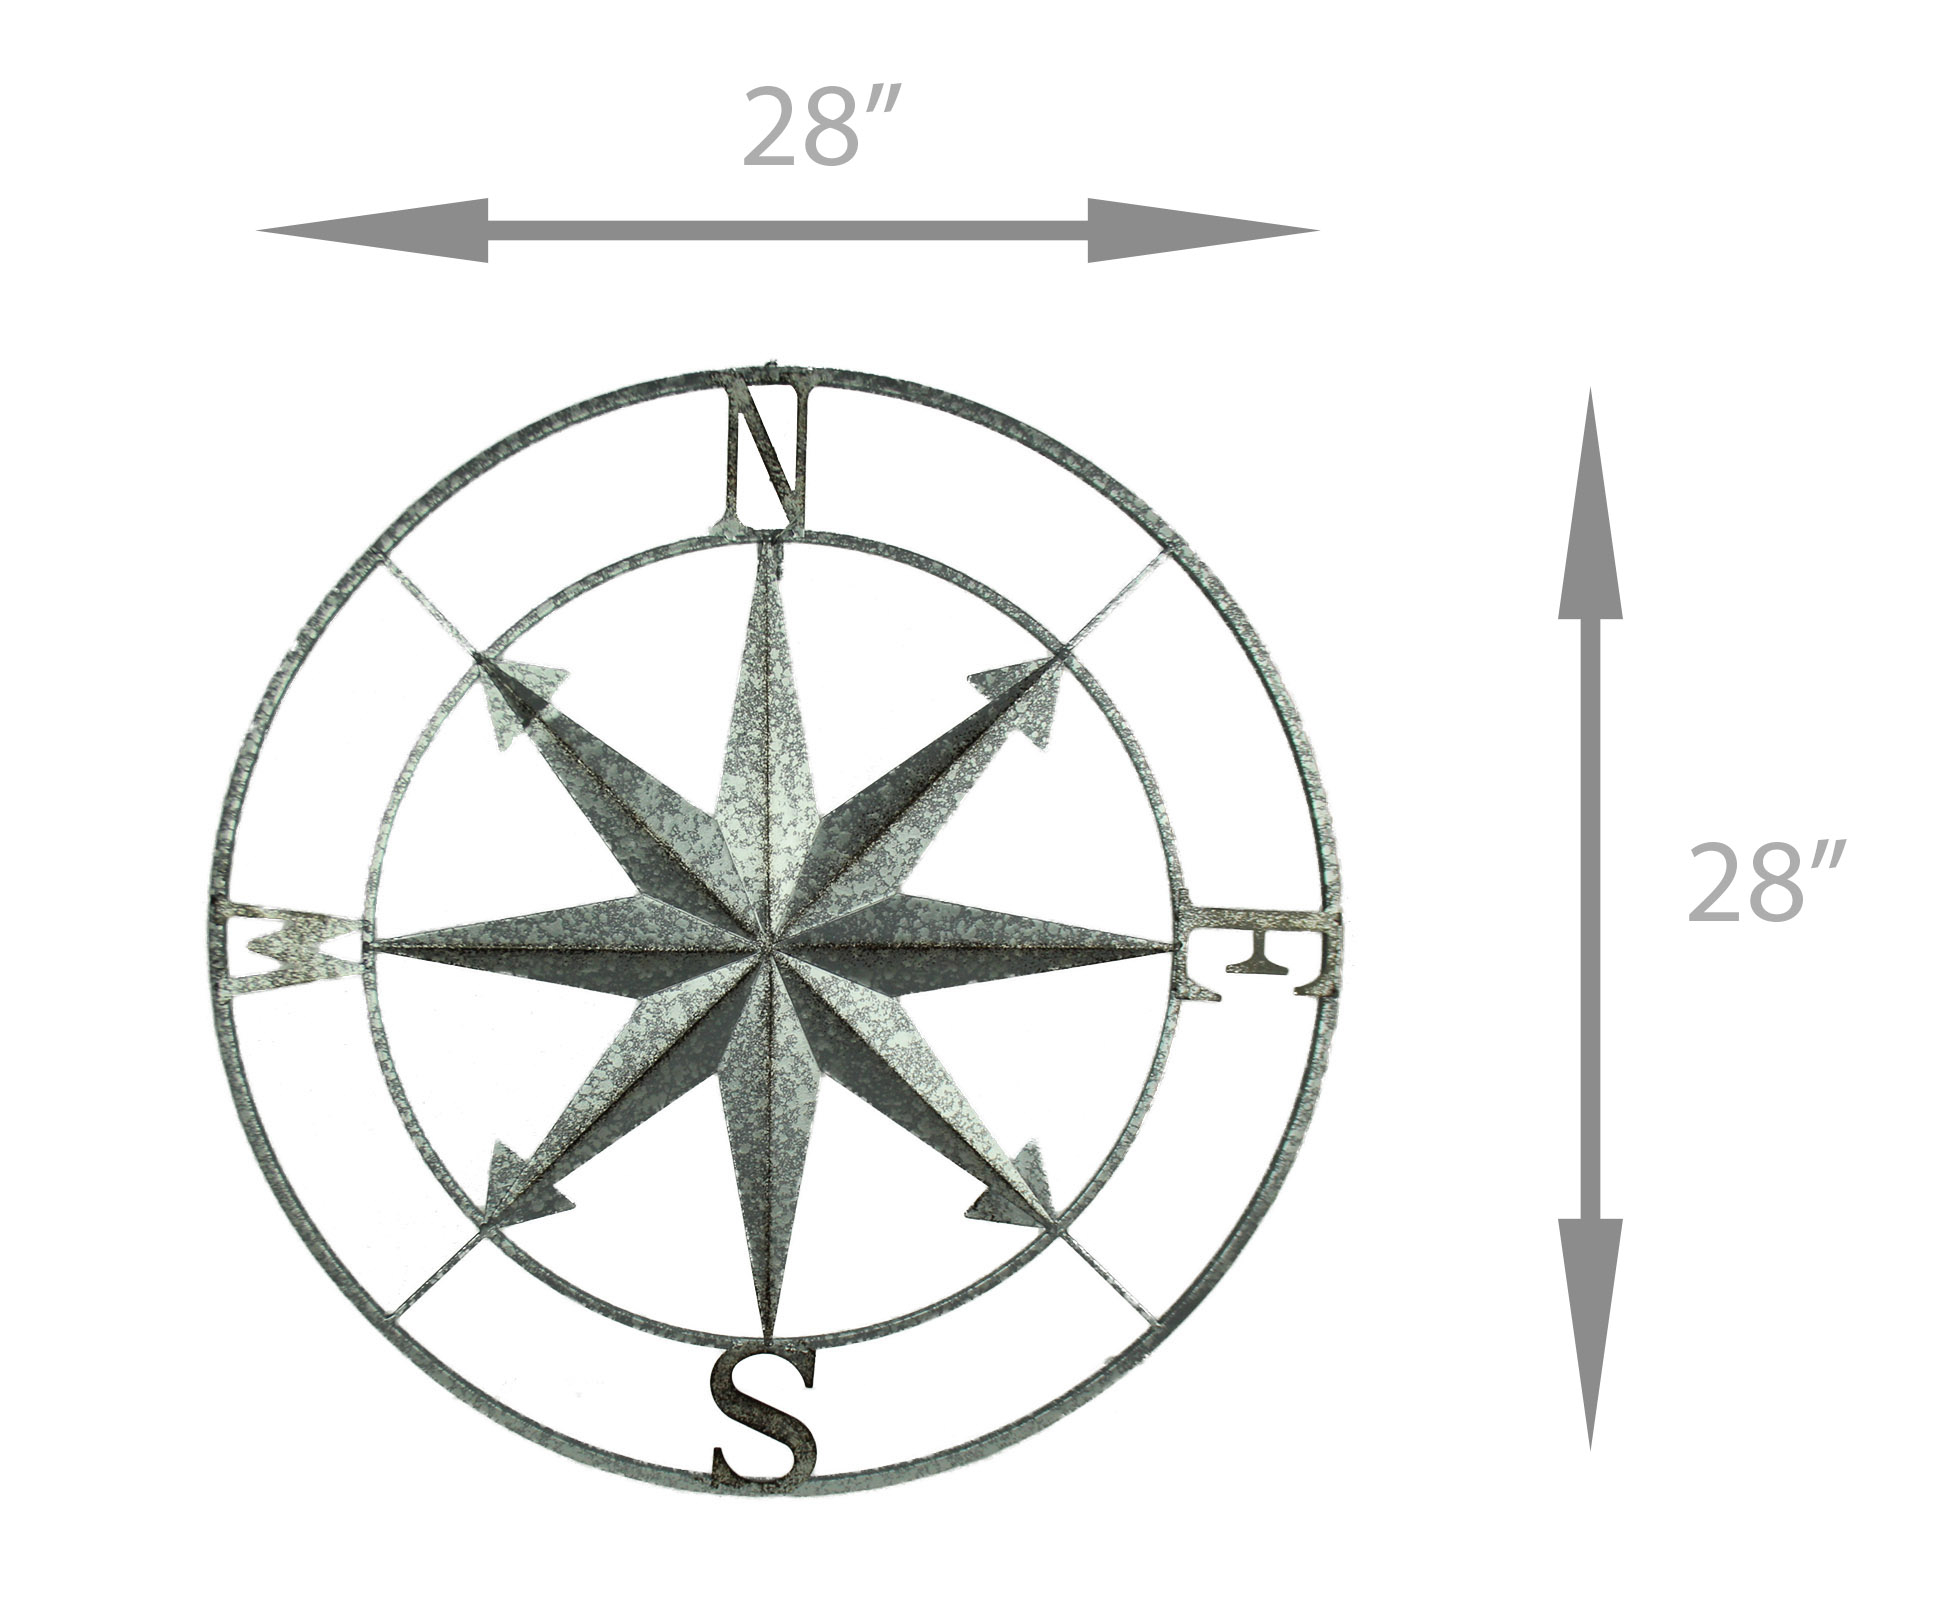 Distressed Metal Indoor/outdoor Compass Rose Wall Hanging 28 Inch Inside Outdoor Metal Wall Compass (View 28 of 30)